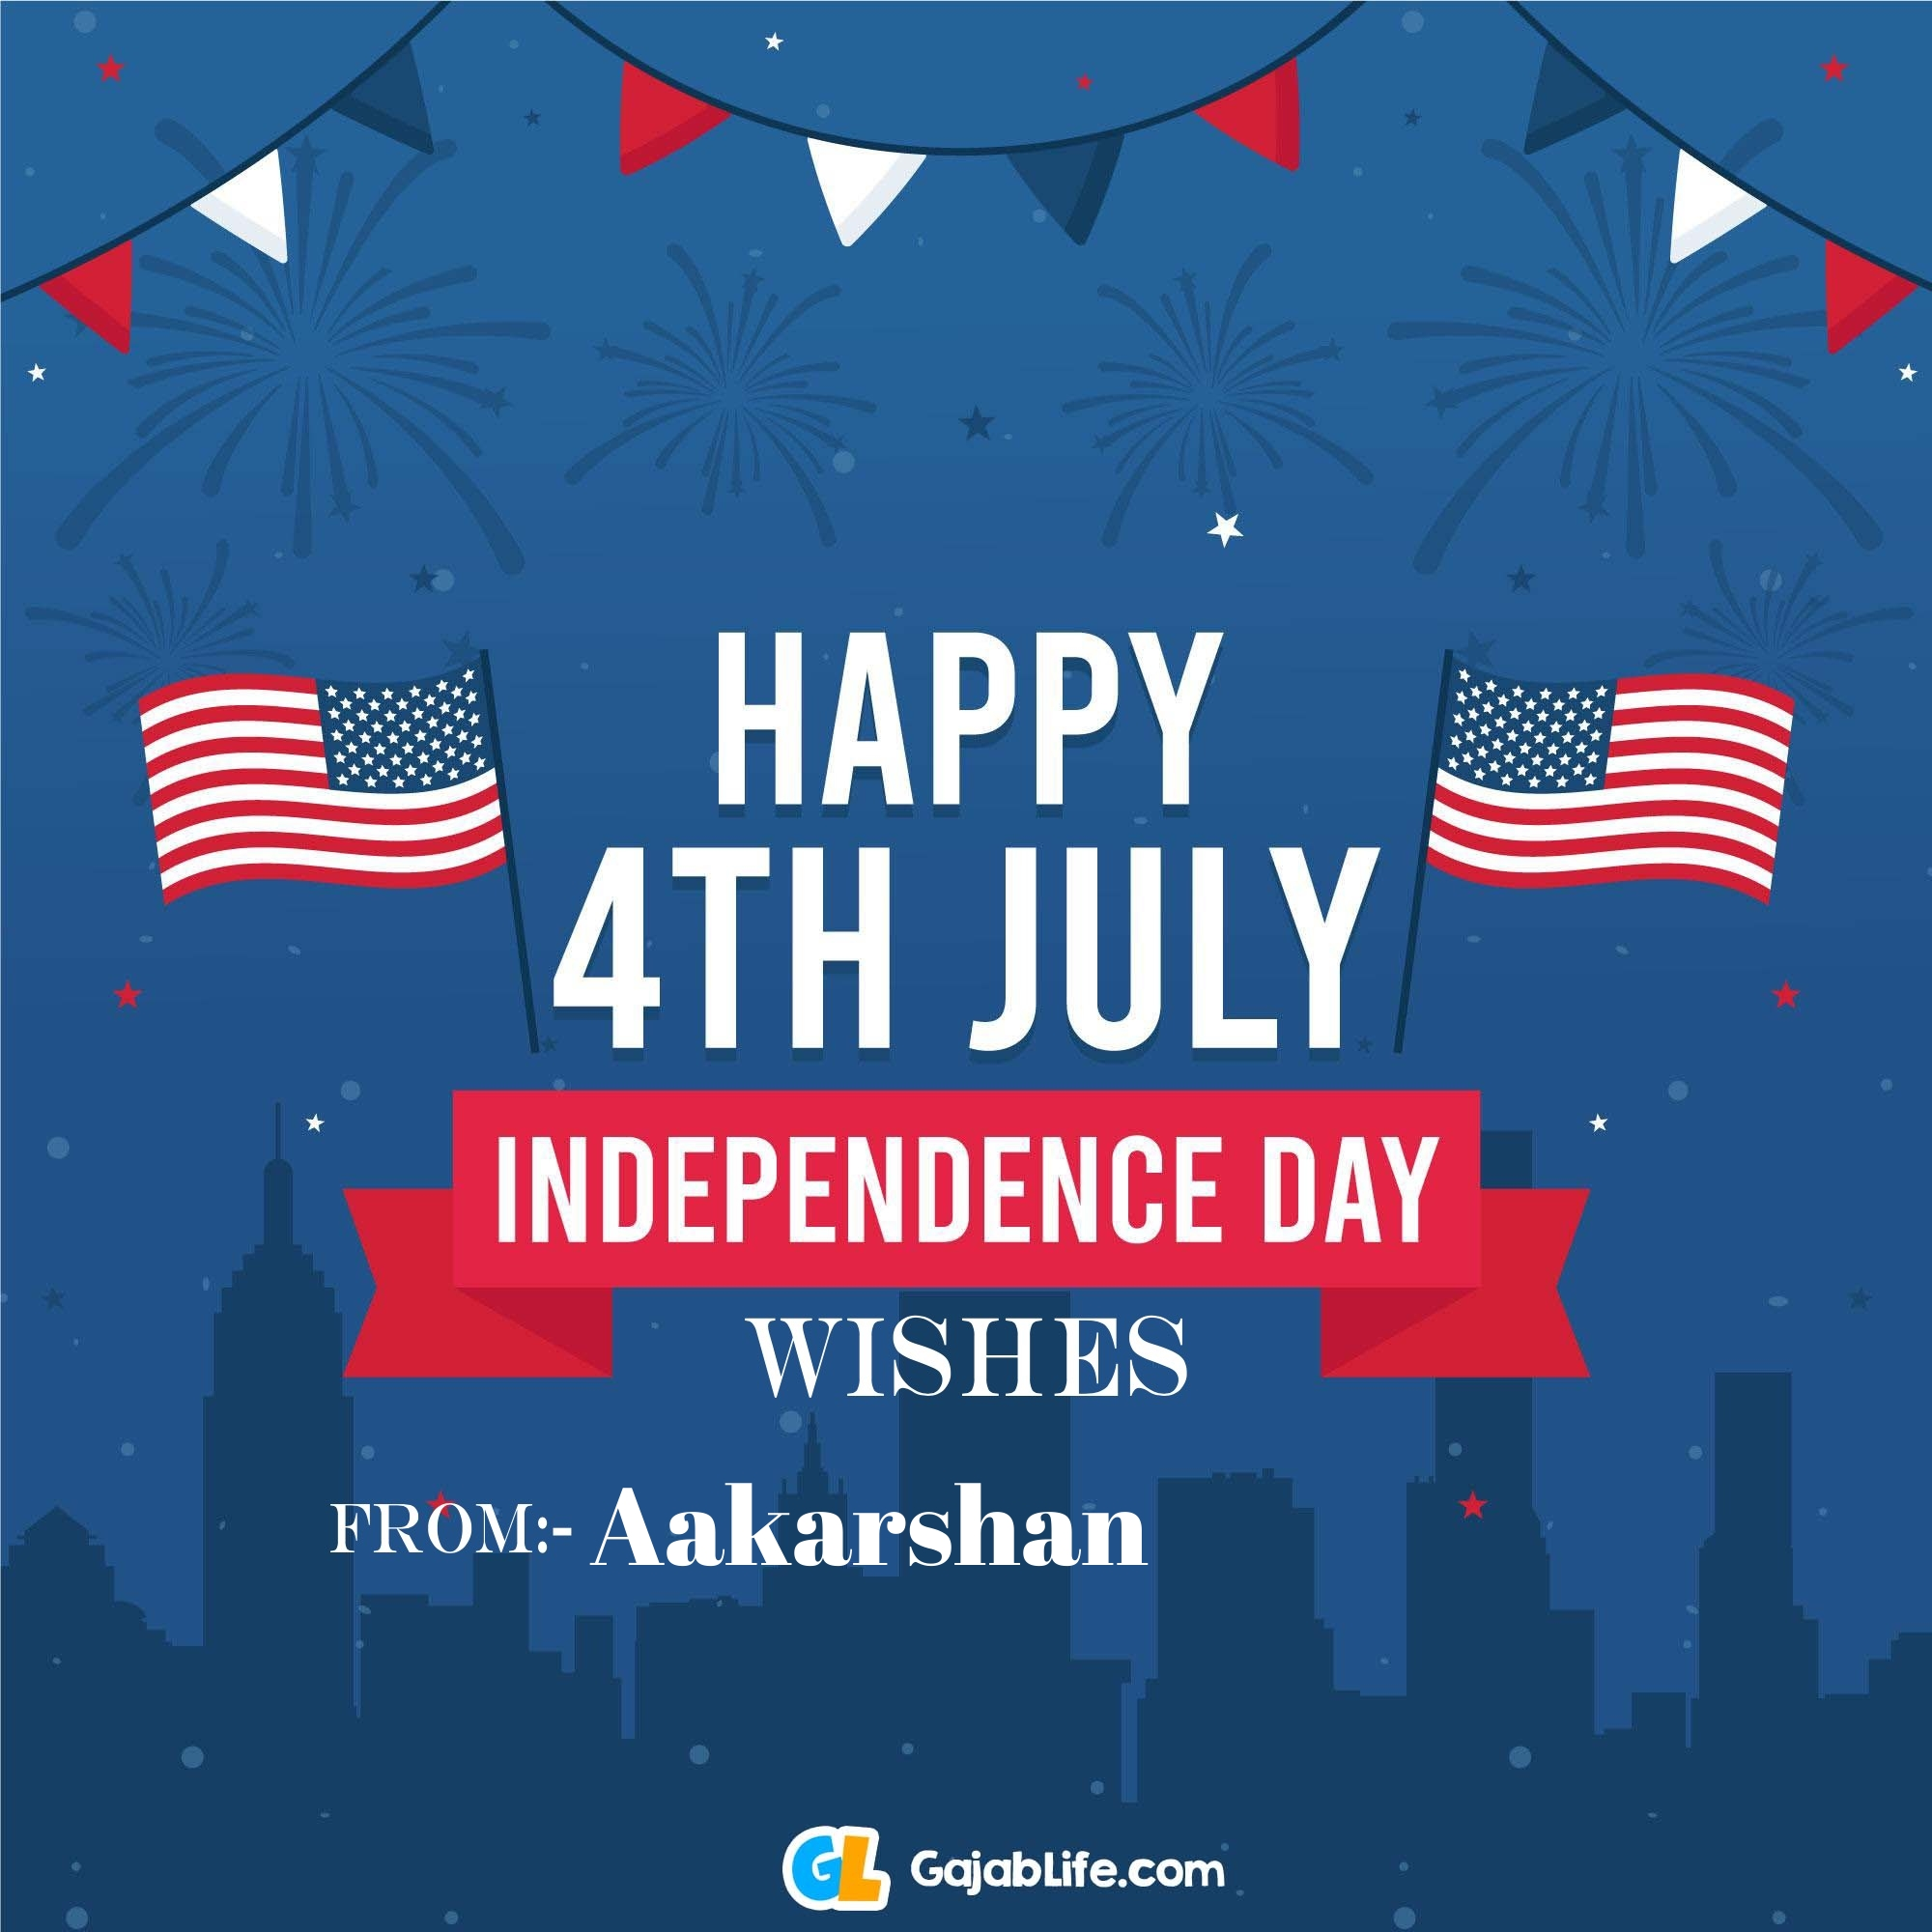 Aakarshan happy independence day united states of america images